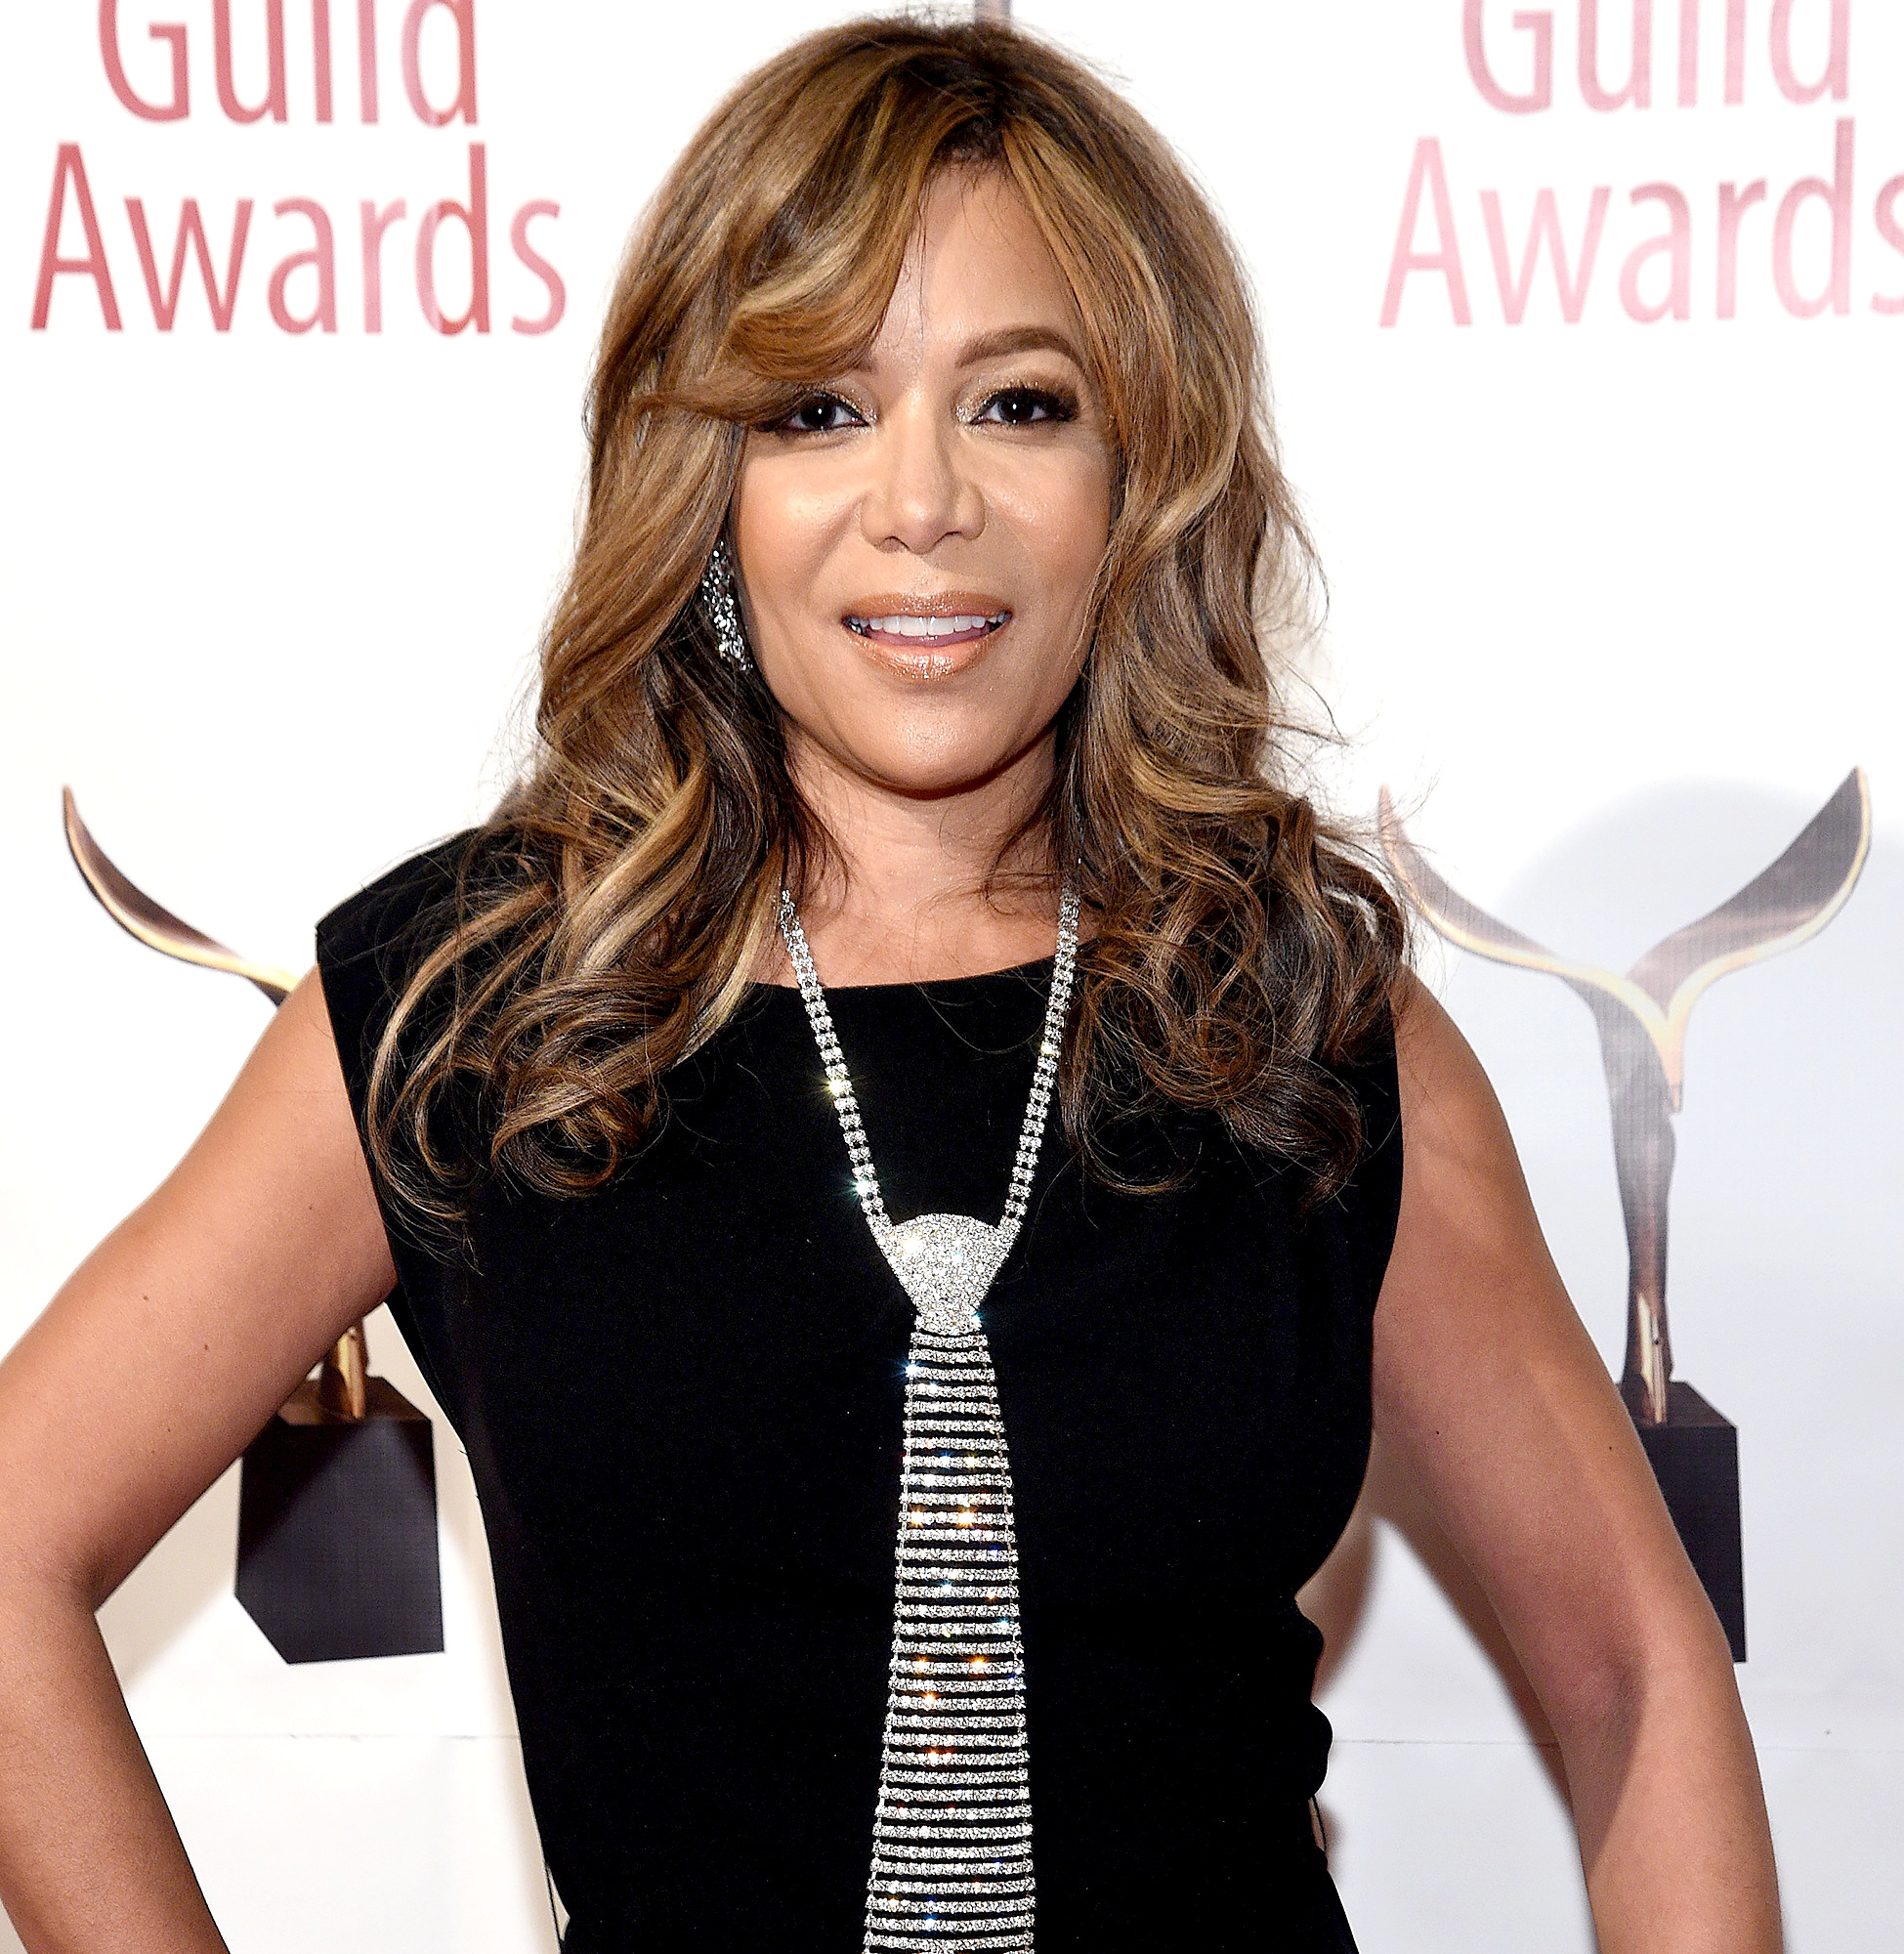 Sunny Hostin Says 'The View' Is Like a 'Sorority'